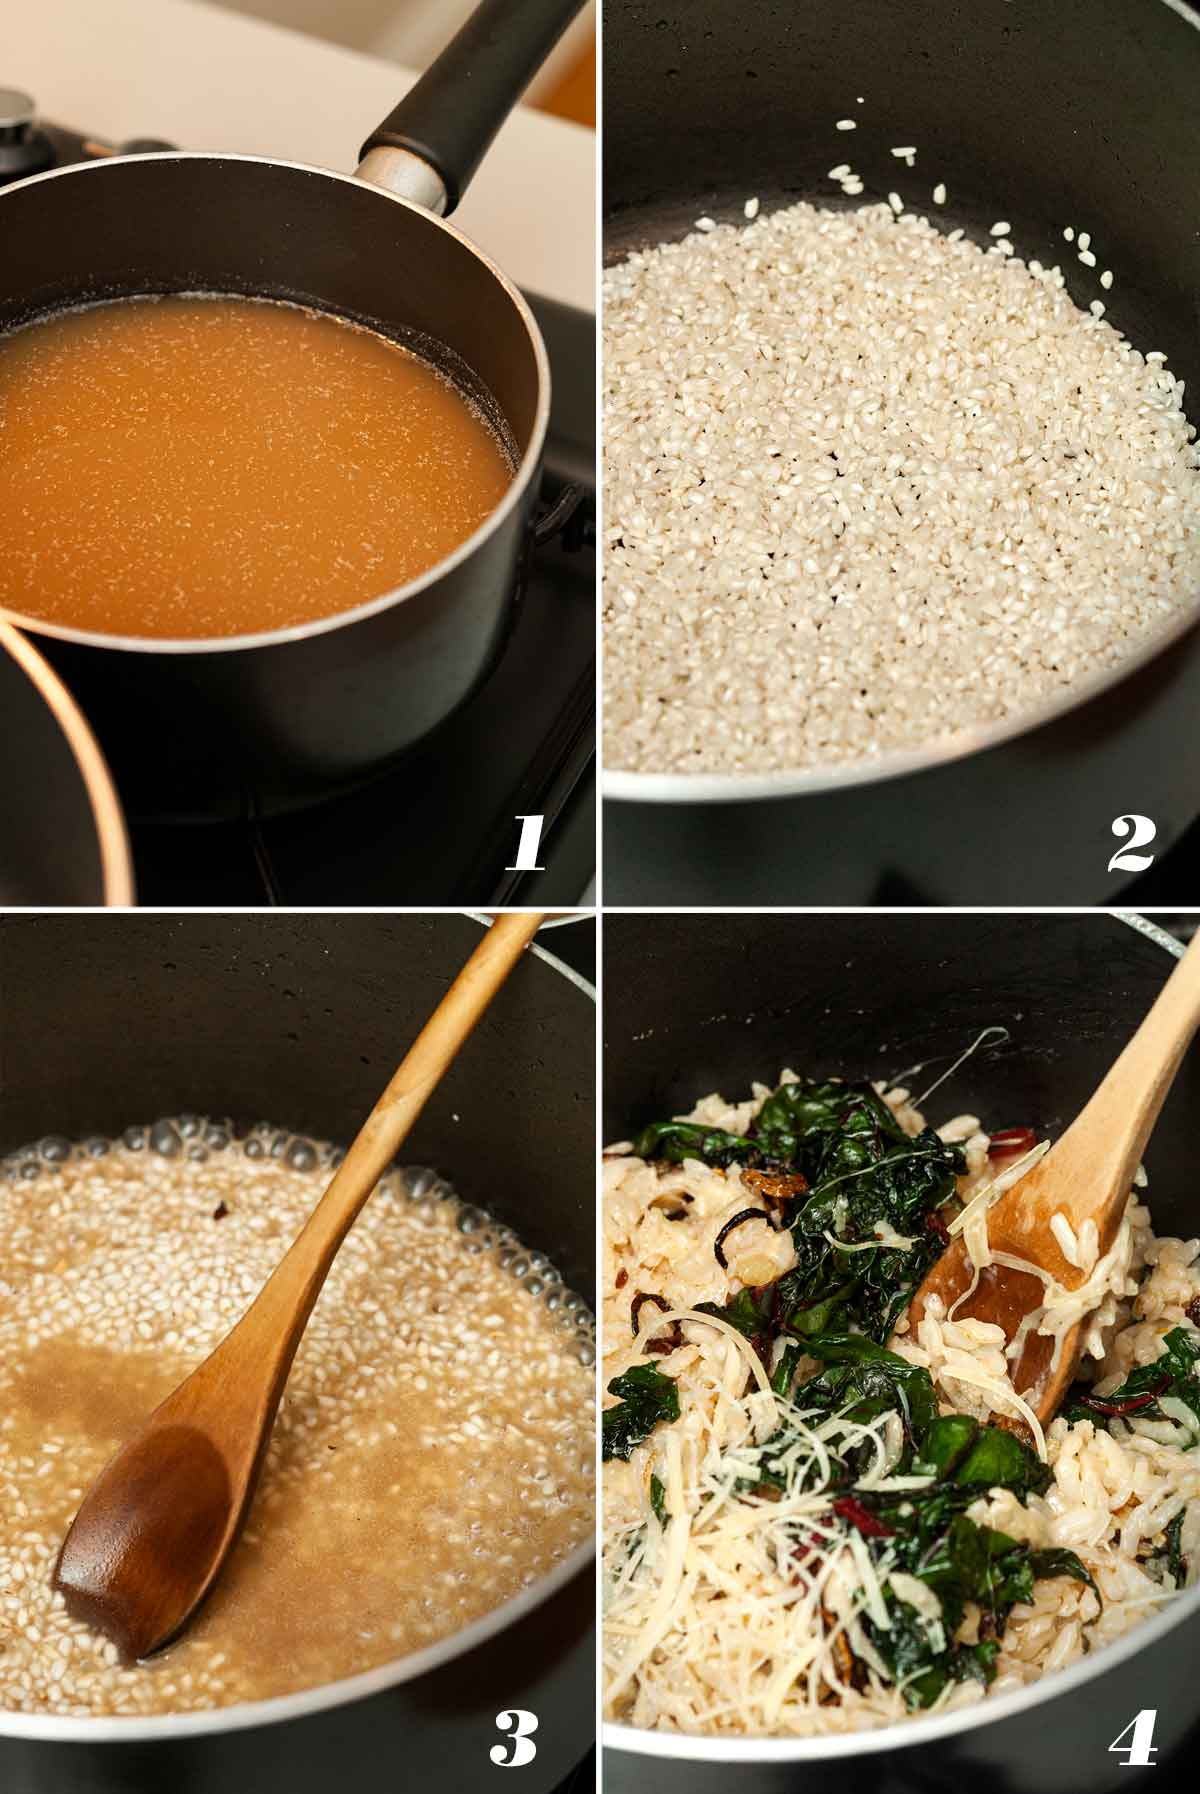 A collage of 4 numbered images showing how to make stove-top risotto.